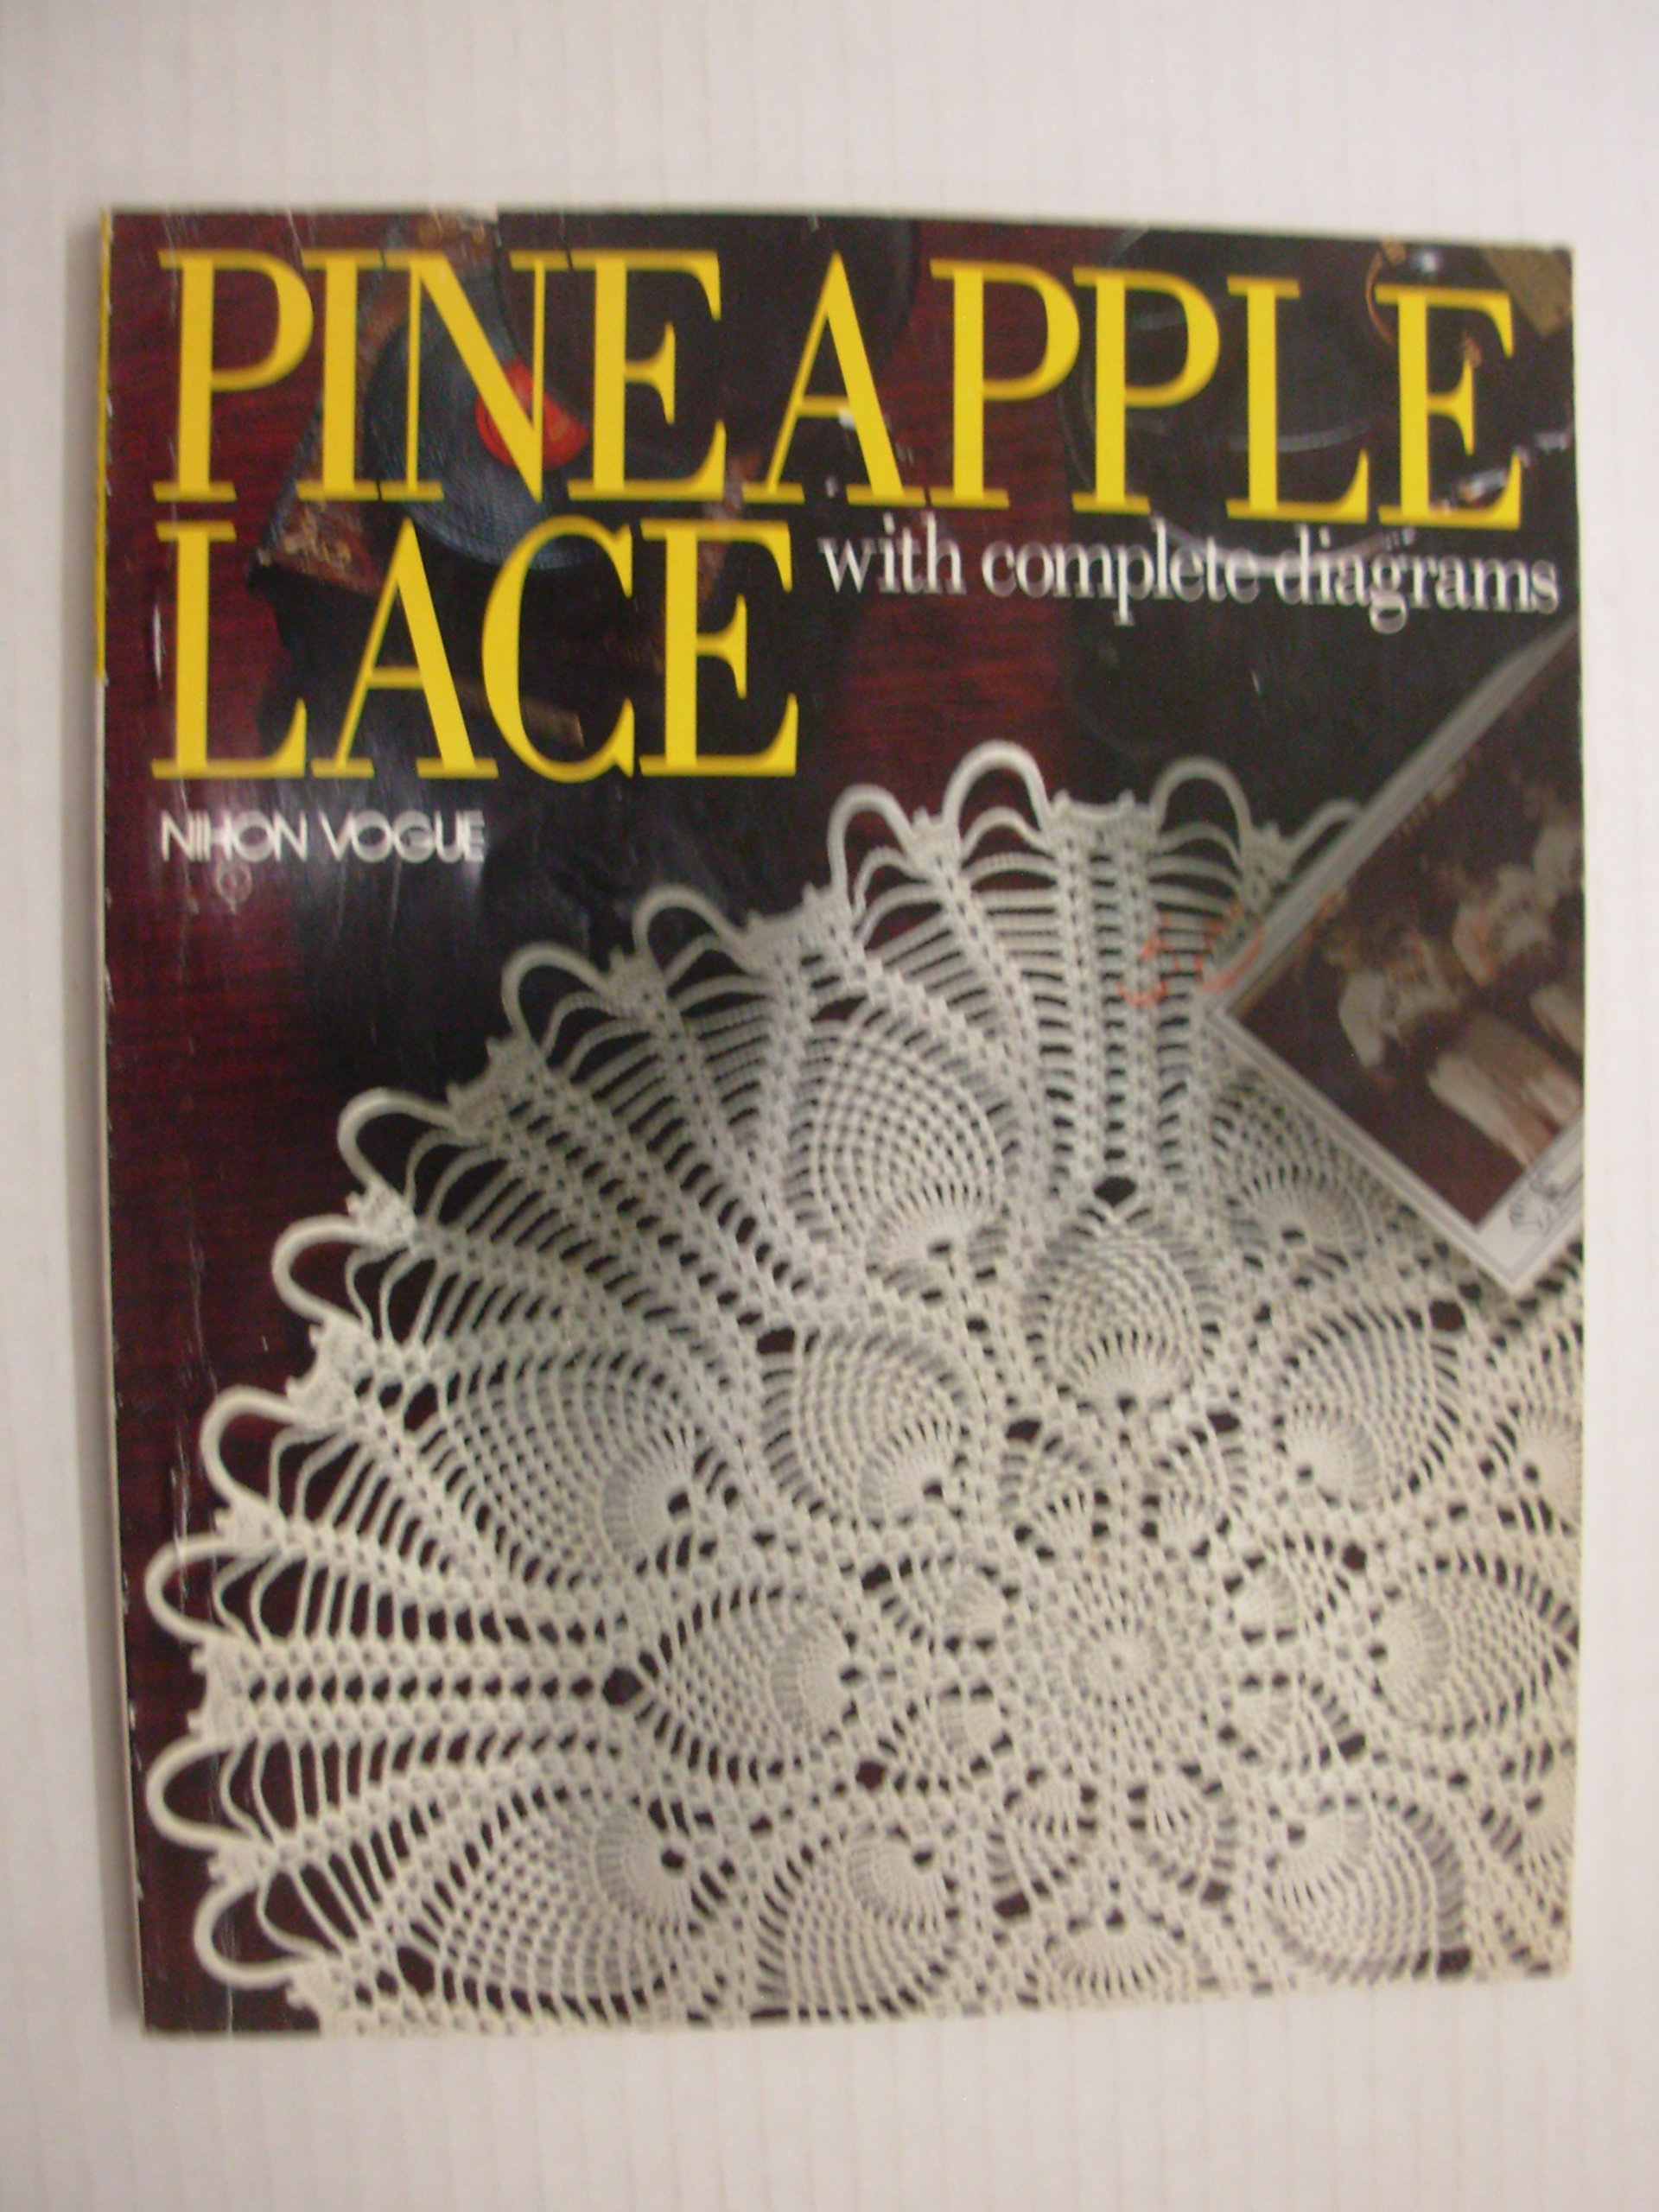 Pineapple Lace With Complete Diagrams Nihon Vogue 9780870407413